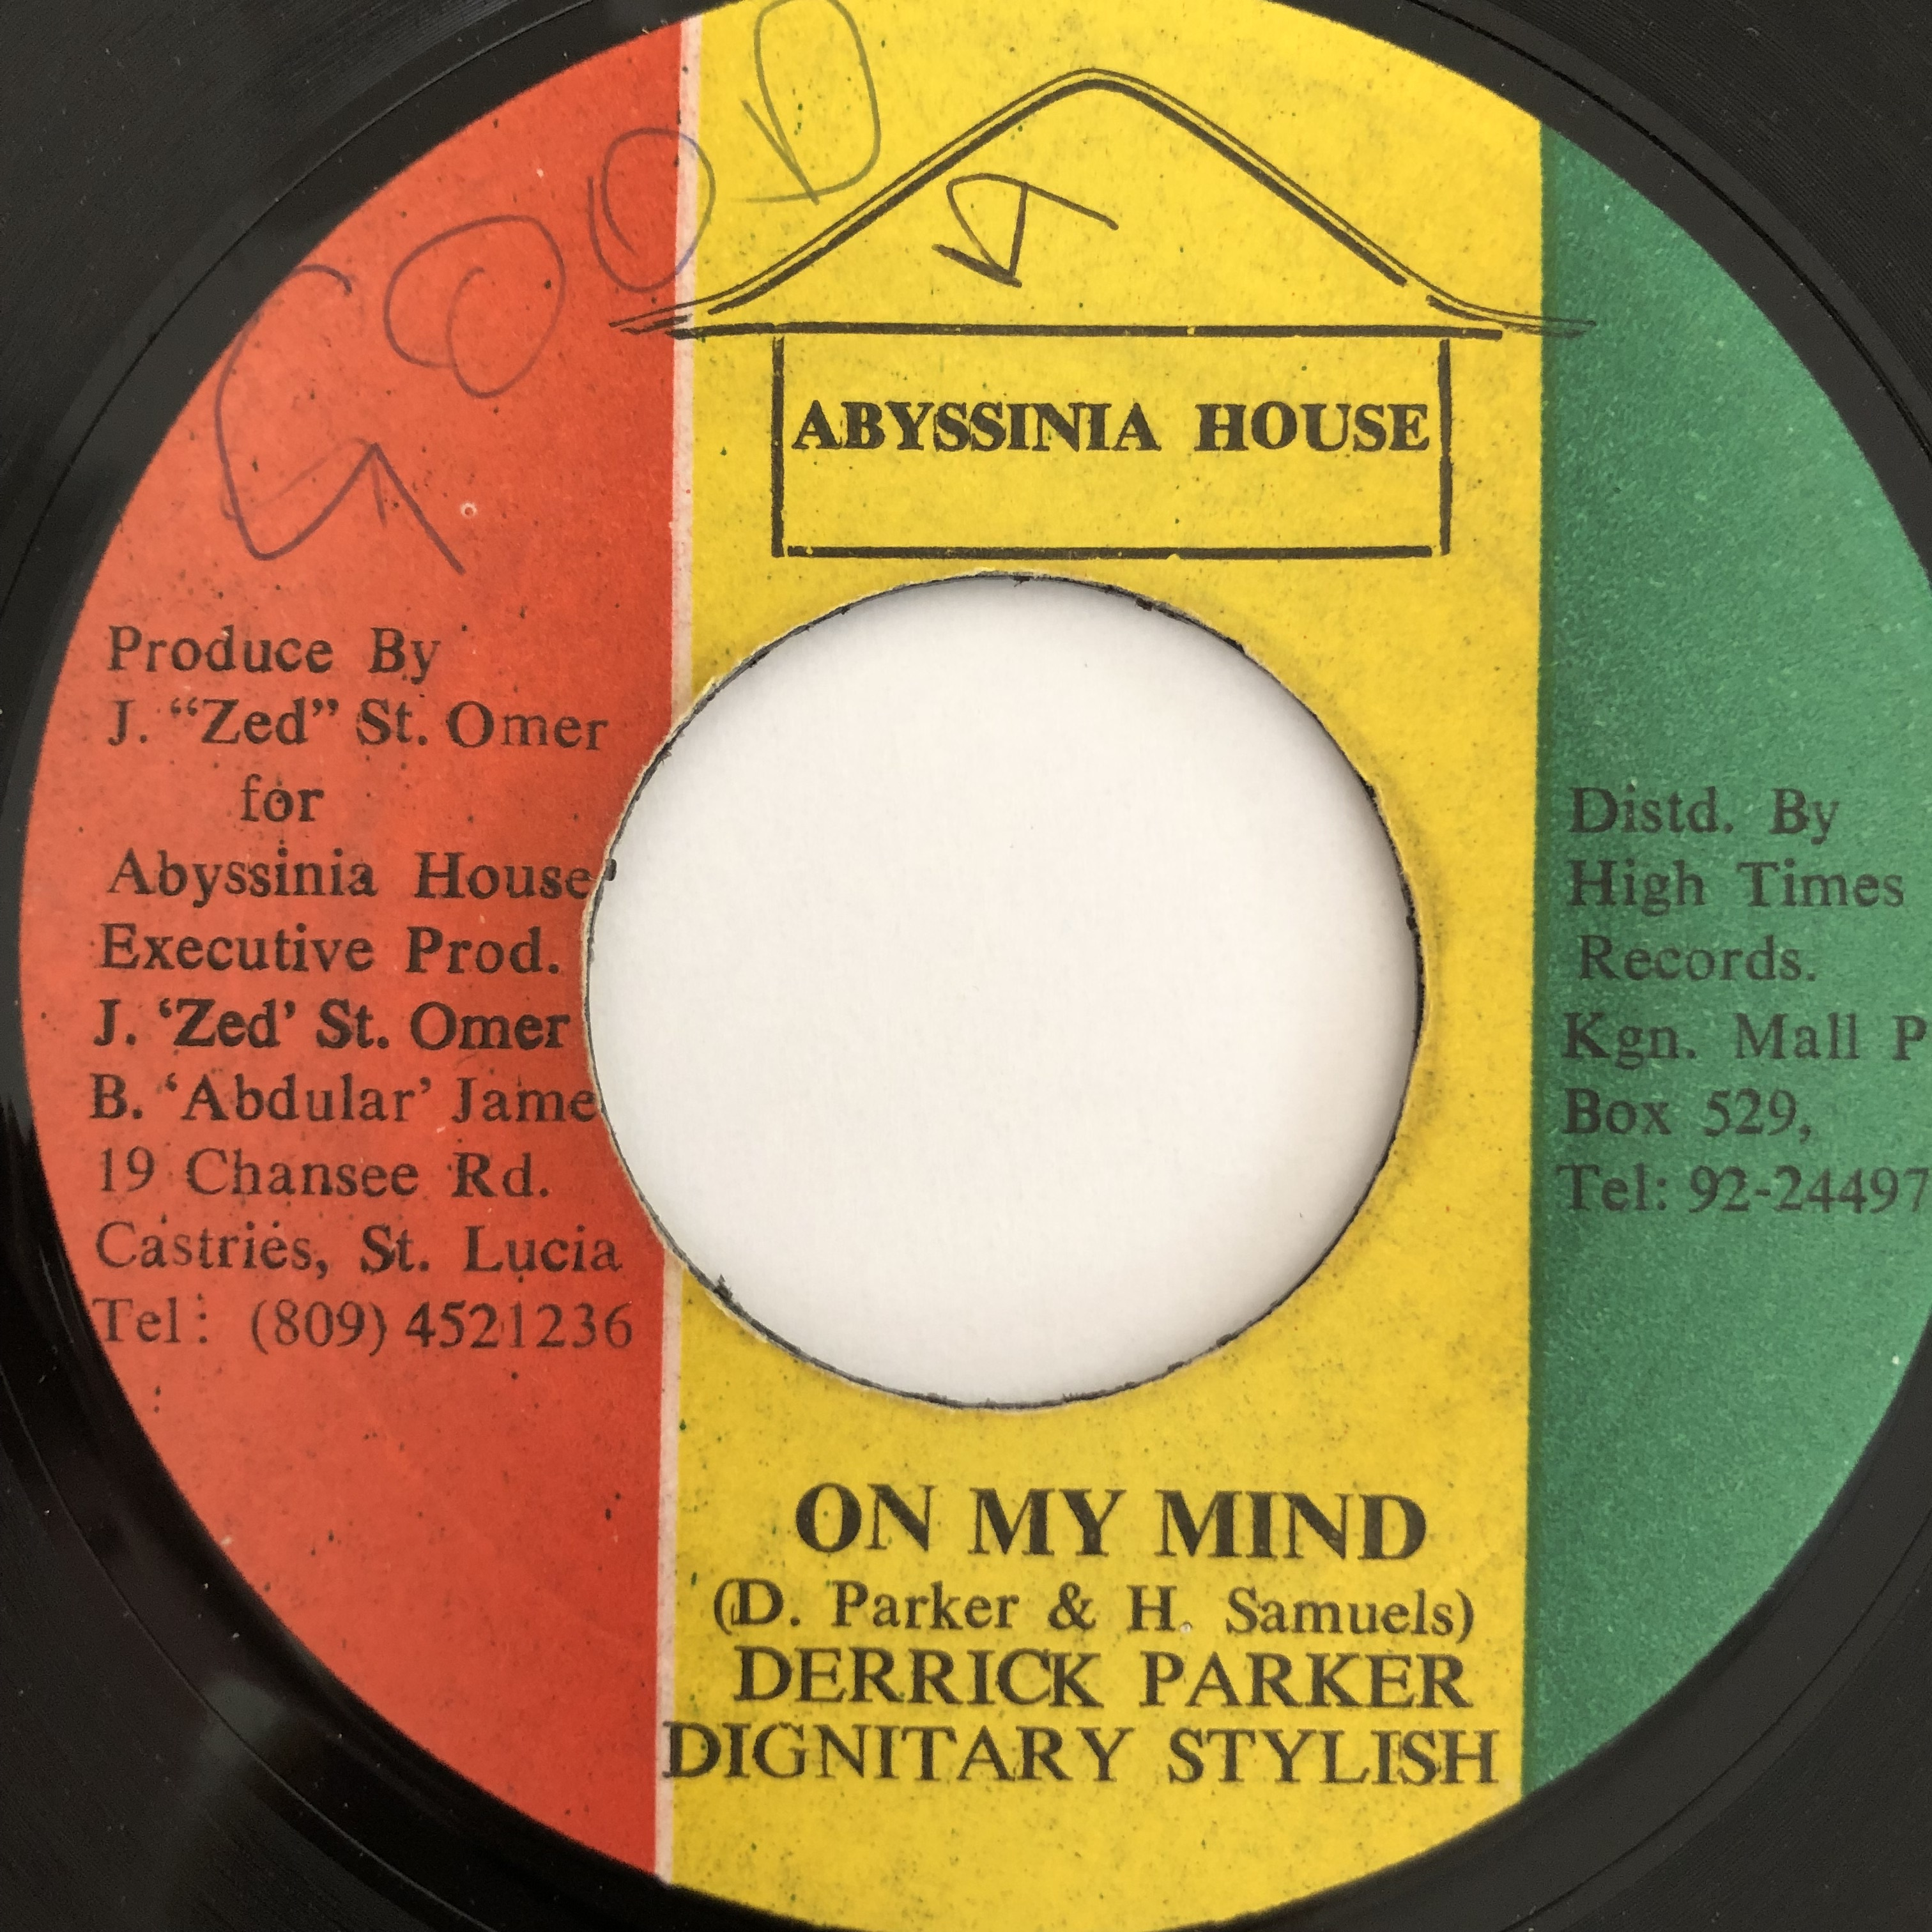 Derrick Parker & Dignitary Stylish - On My Mind【7-20098】